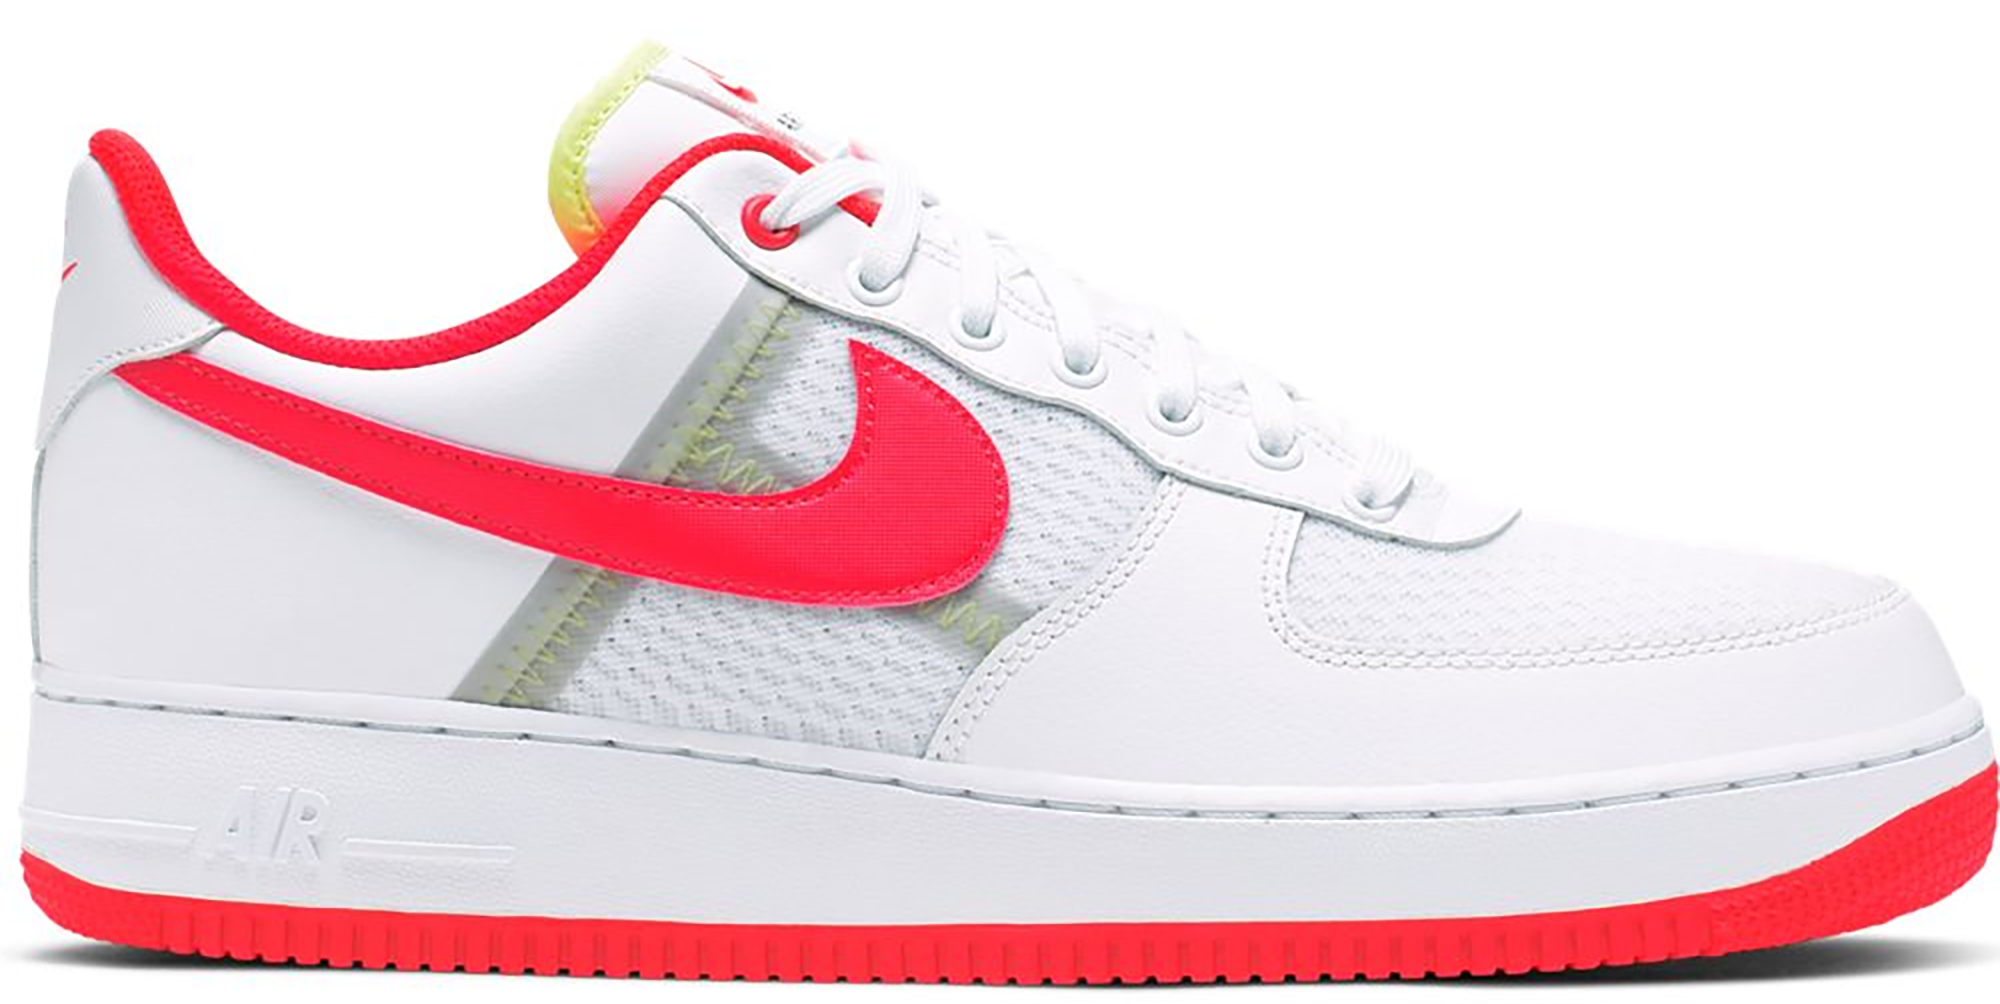 Nike Air Force 1 Low Transparent White